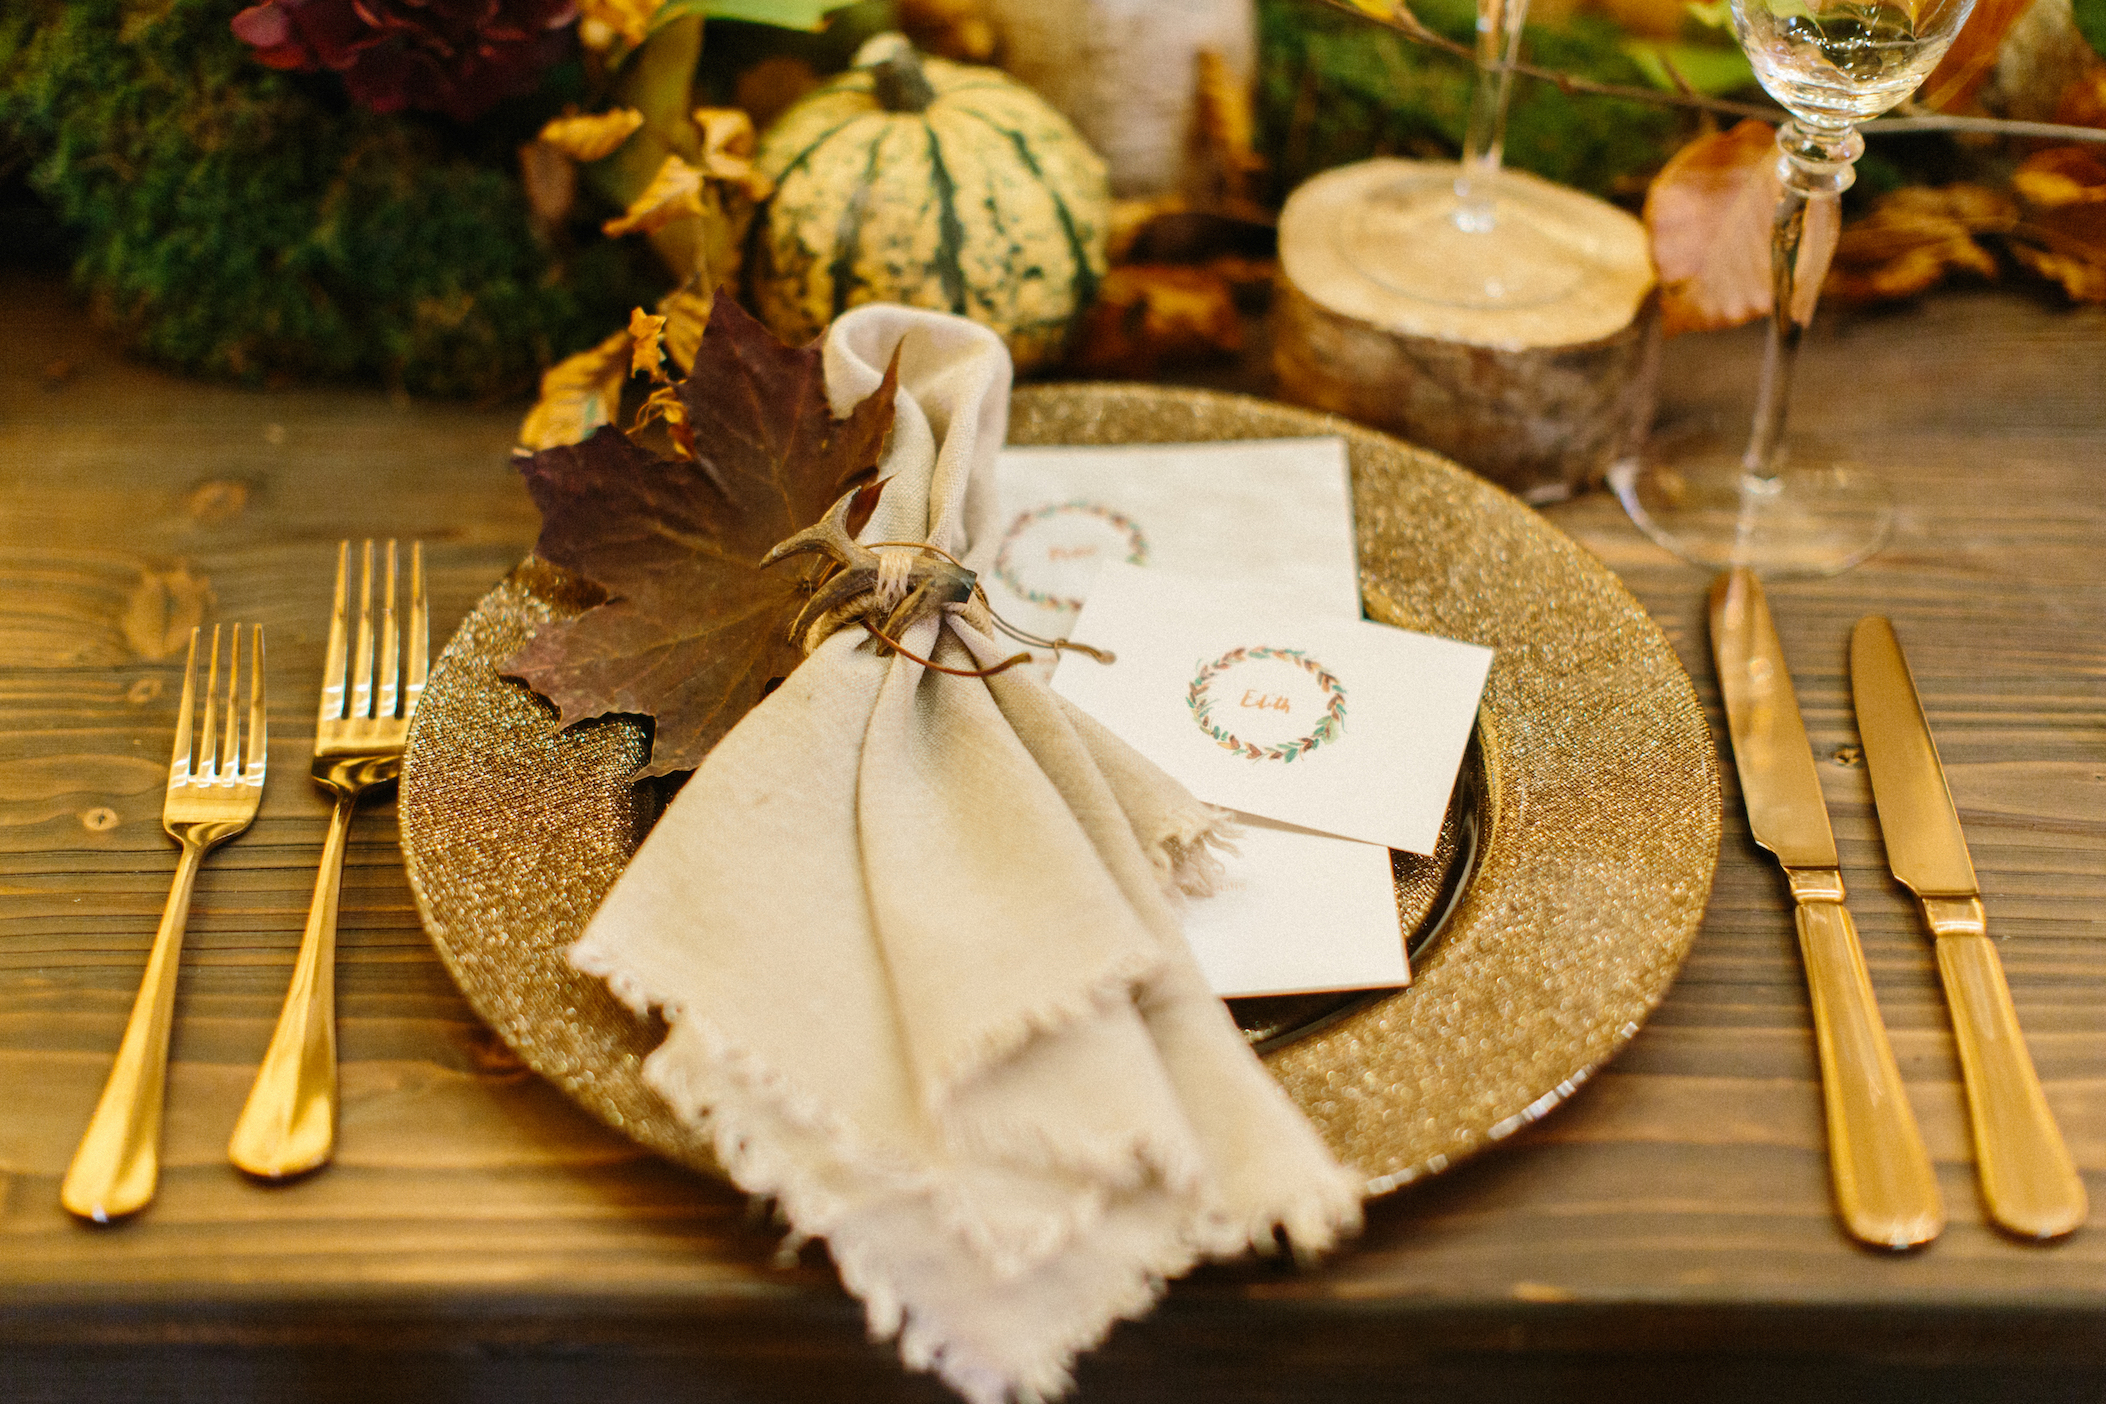 PapaKata Autumn Open Weekend: Teepee Tablescape with Pocketful of Dreams, Plewsy Stationery, Rose & Spade Flowers, WhiteHouse Event Crockery captured by Melissa Beattie